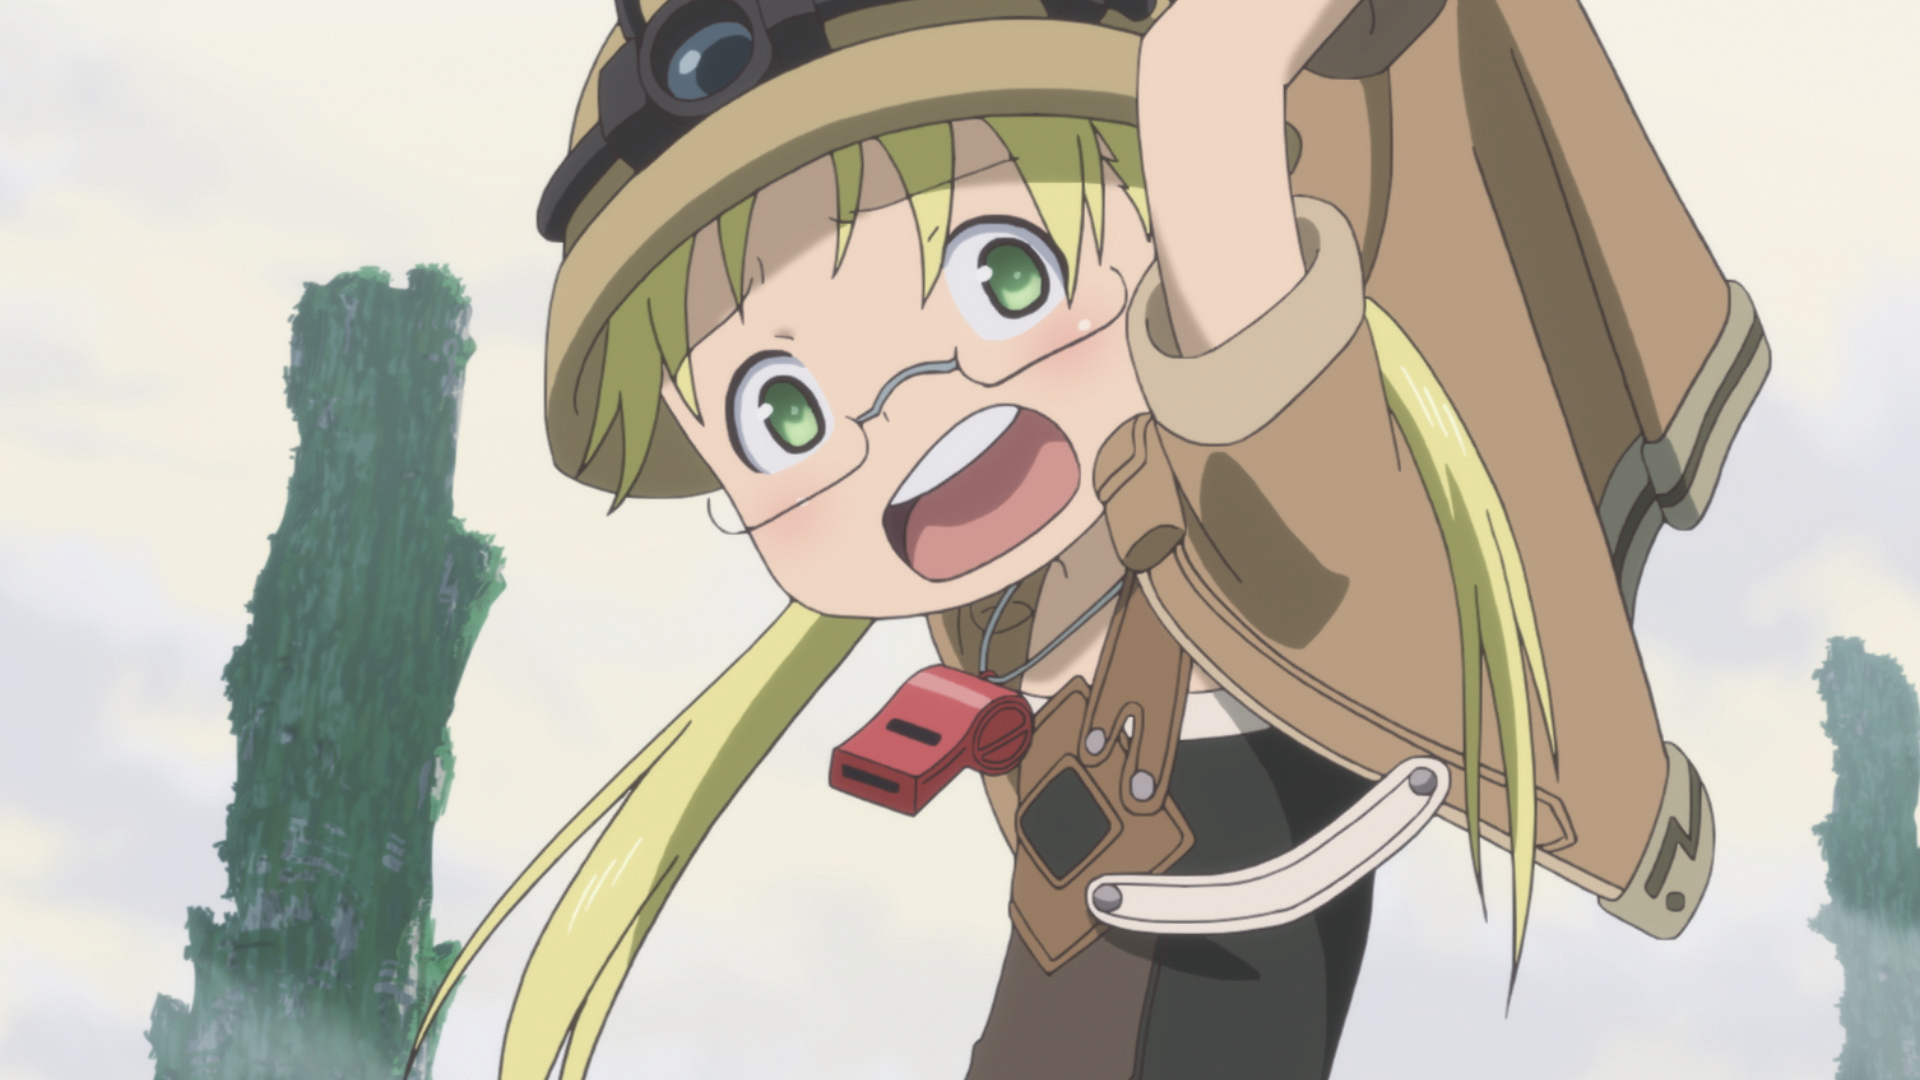 Made in Abyss' Riko